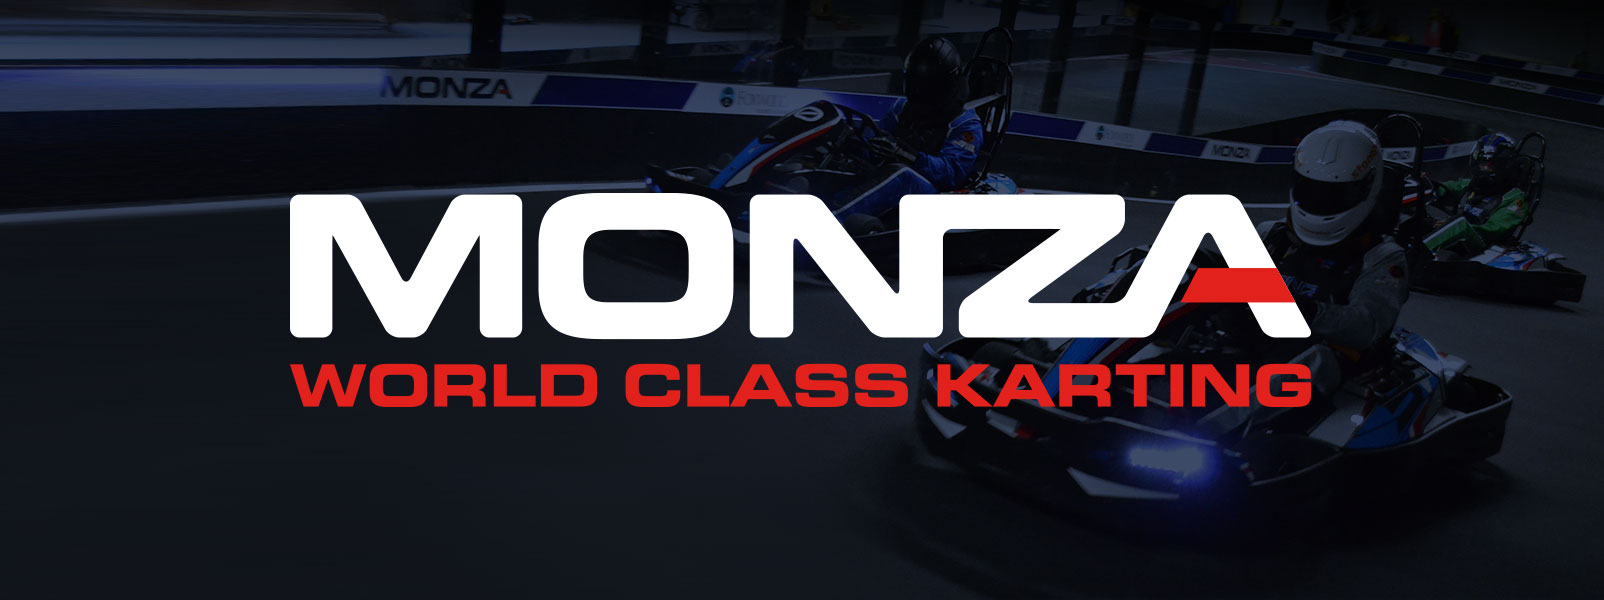 Monza World Class Karting branding